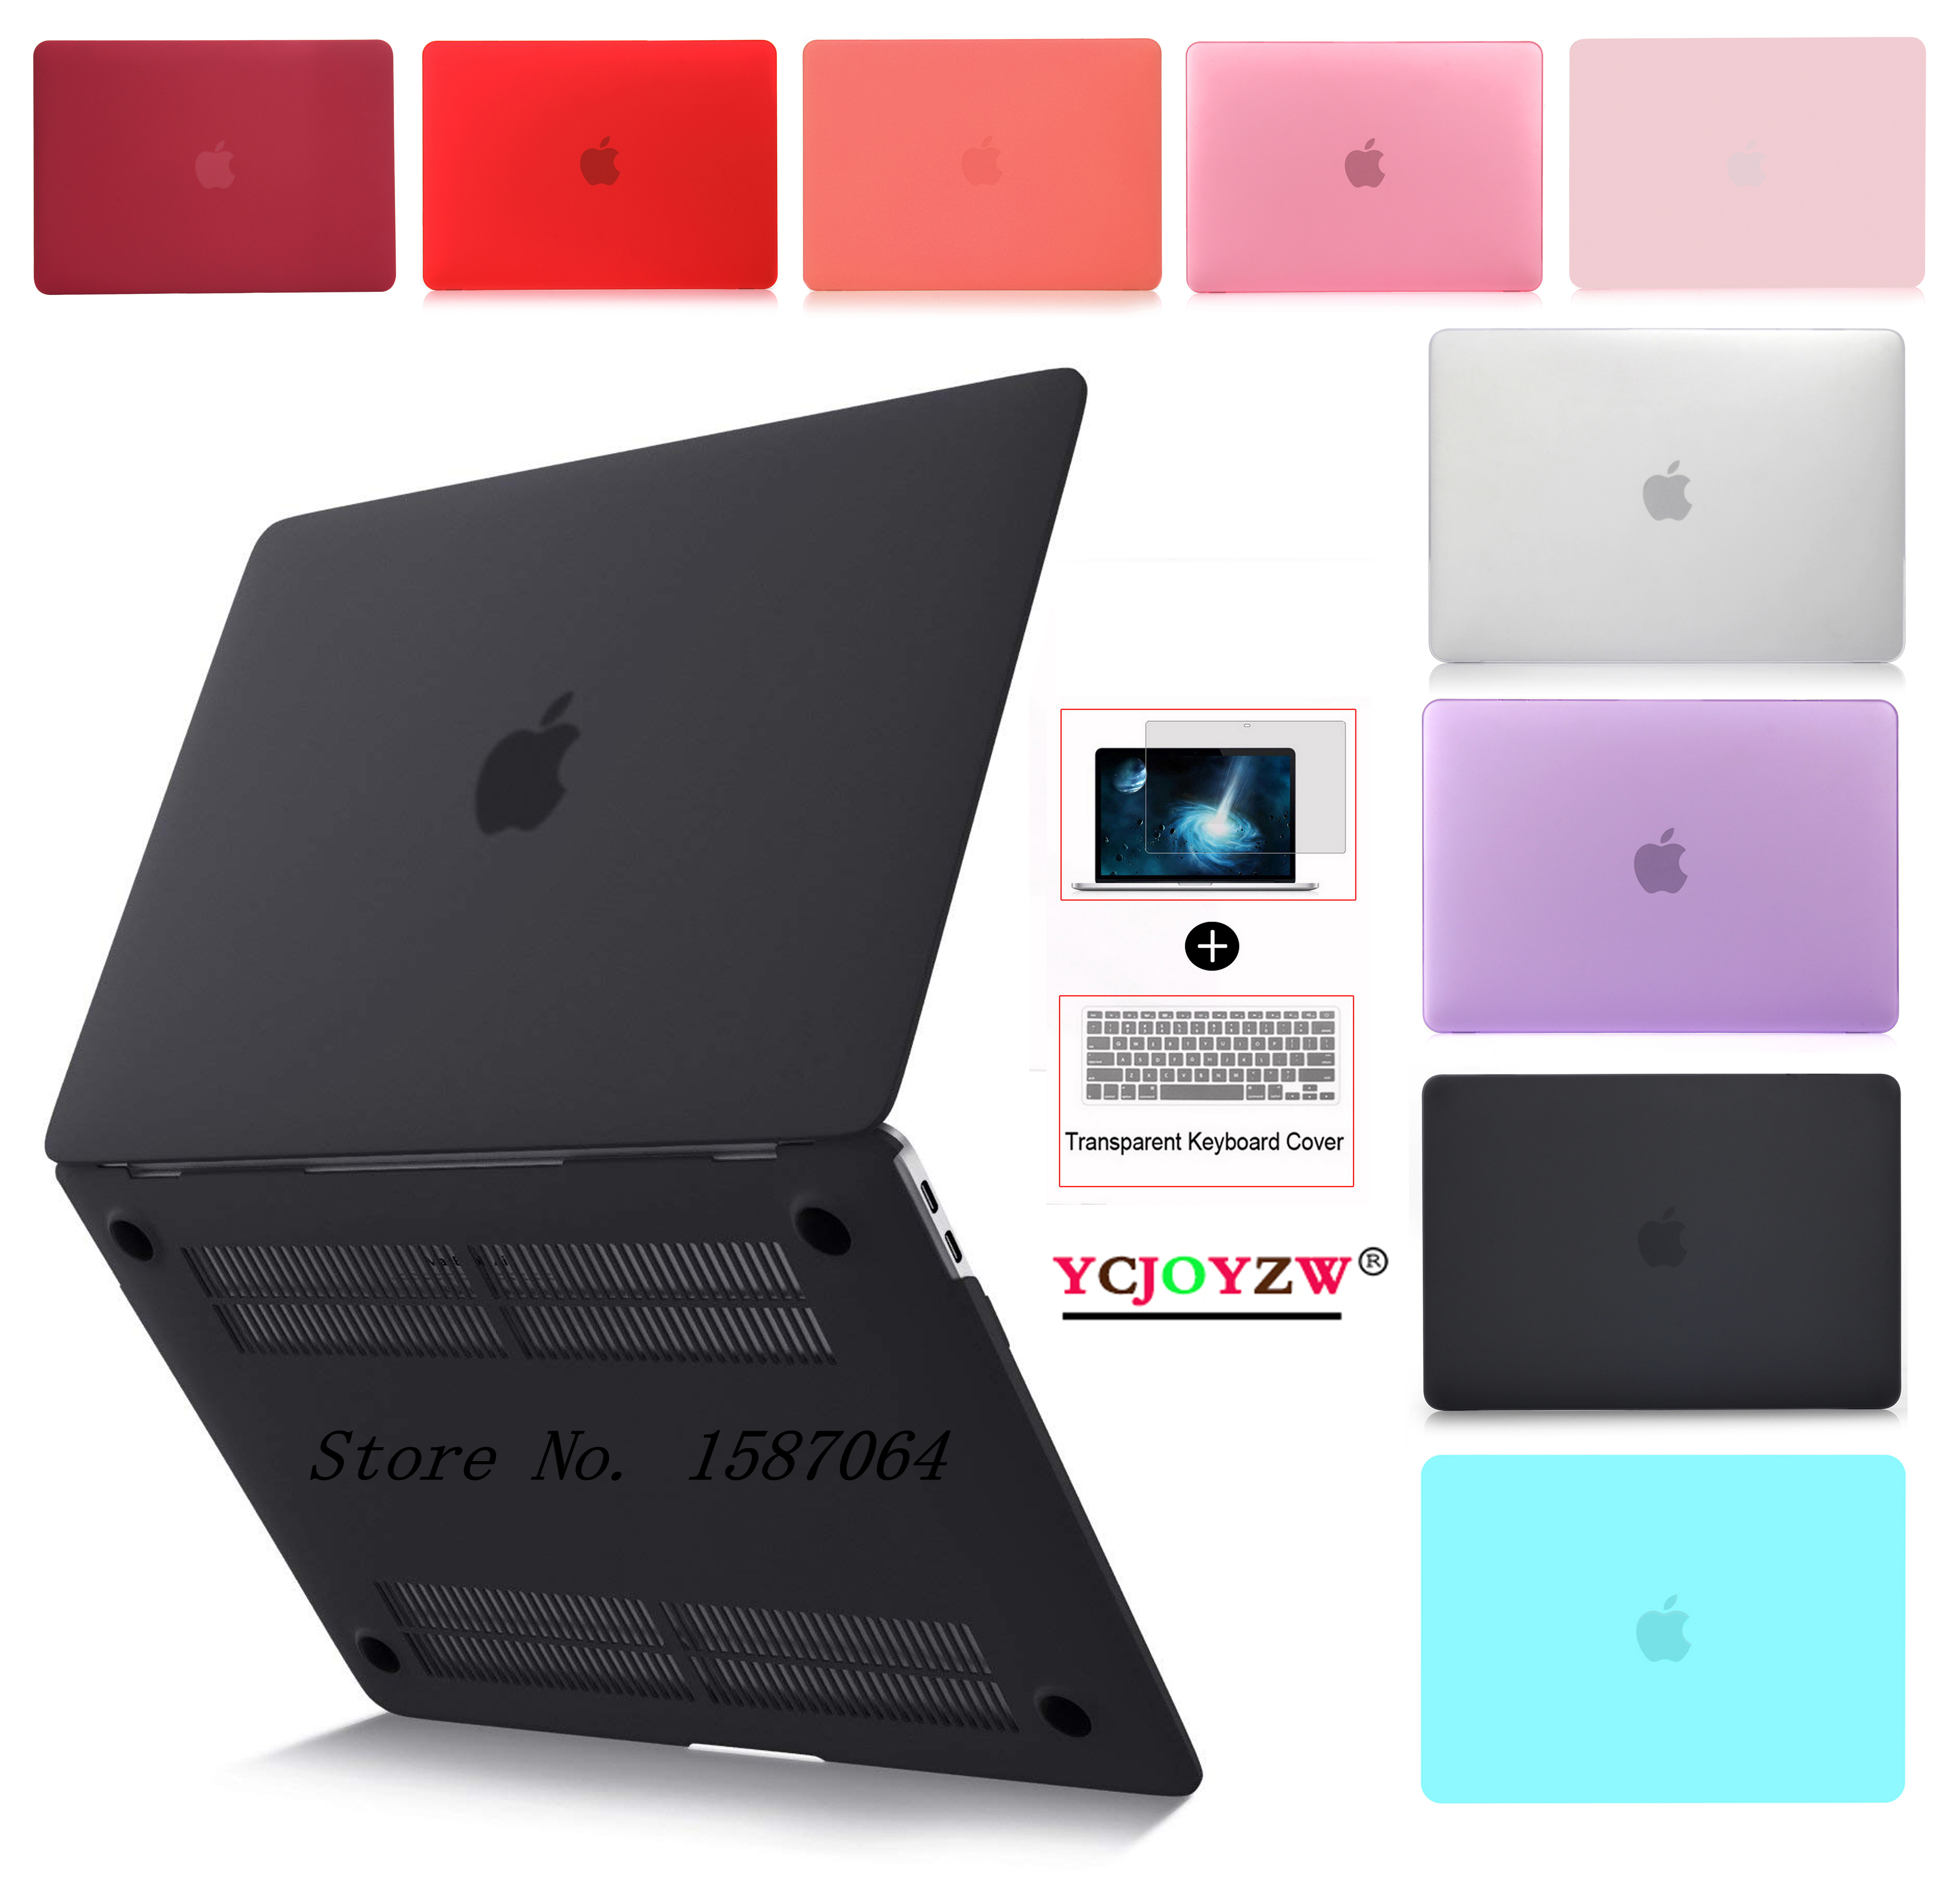 Laptop Case For Apple MacBook Air Pro Retina 11.6 12 13.3 15.4 Inch For Mac Book New Air 13 A1932 A2159 Pro 13 15 With Touch Bar